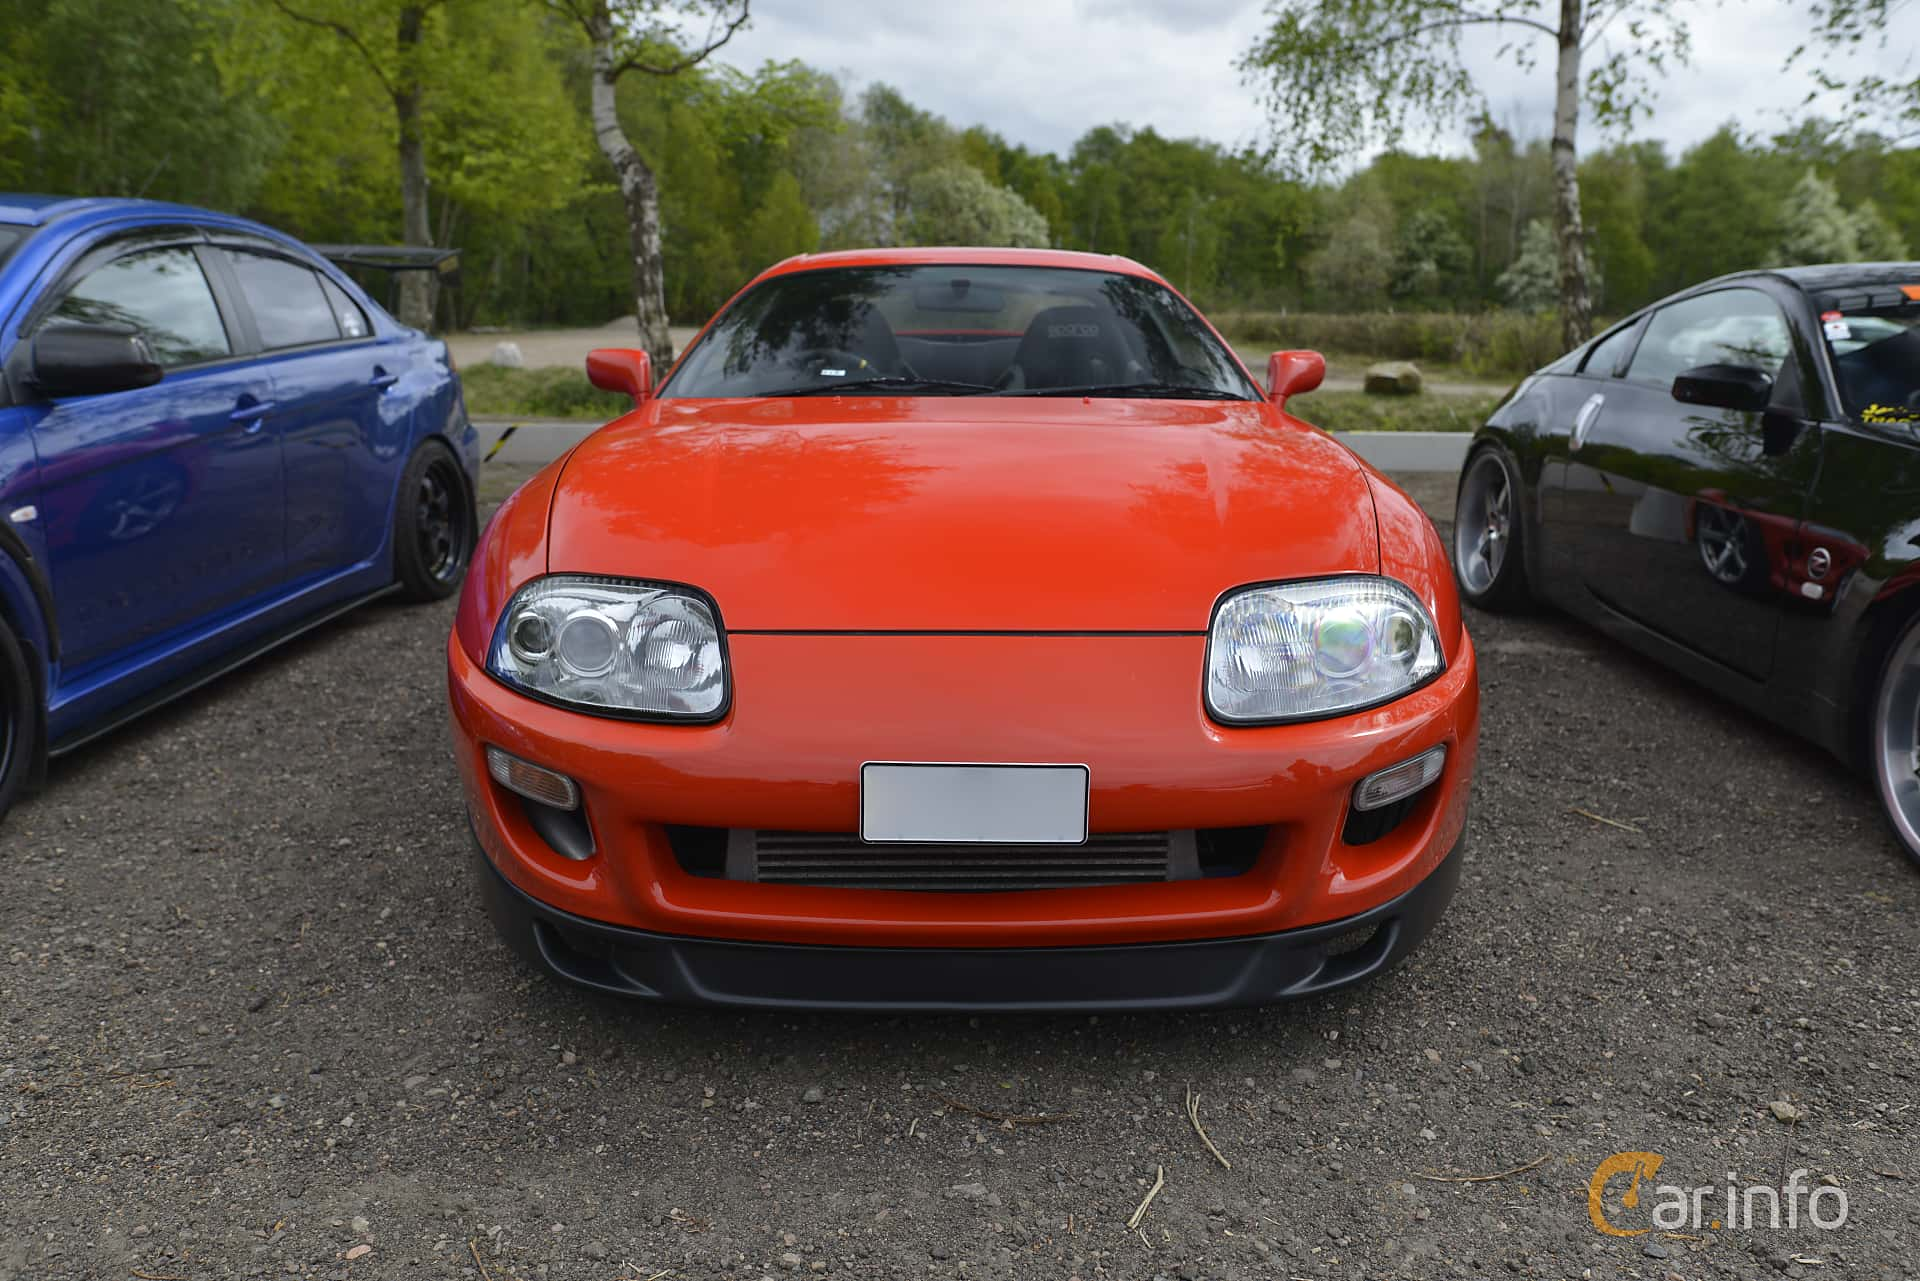 4 images of Toyota Supra 3 0 Manual 280hp 1993 by johanb